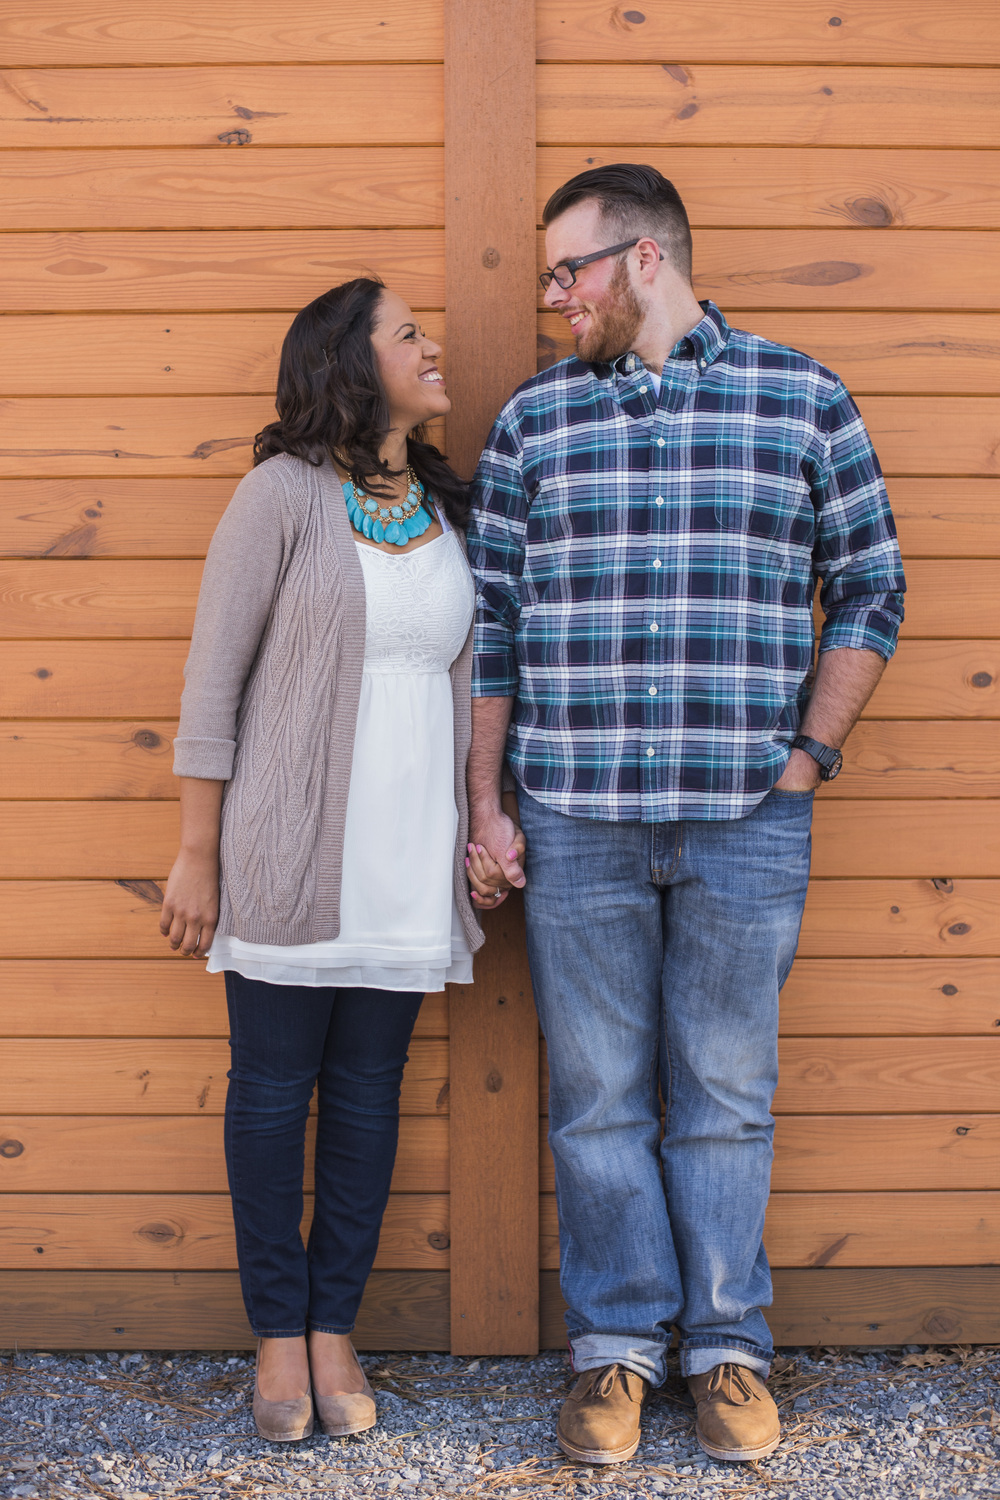 cabin_mountains_romantic_field_engagement_session_lynchburg_va011.jpg